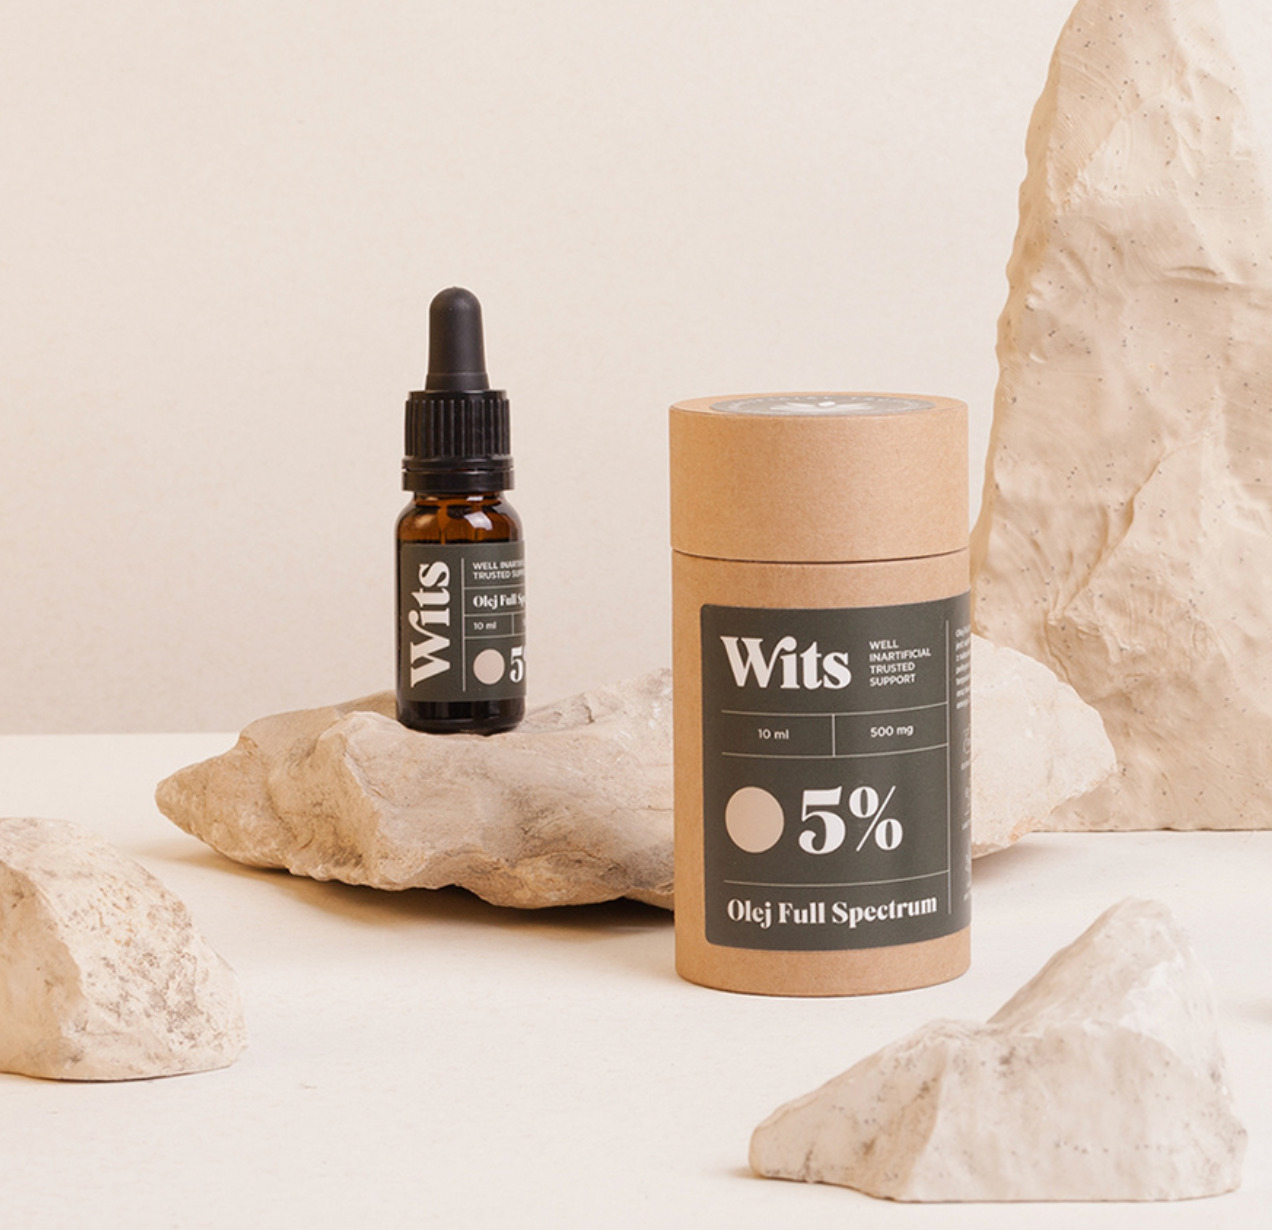 wits packaging for skin and body care; paper products styled on rocks